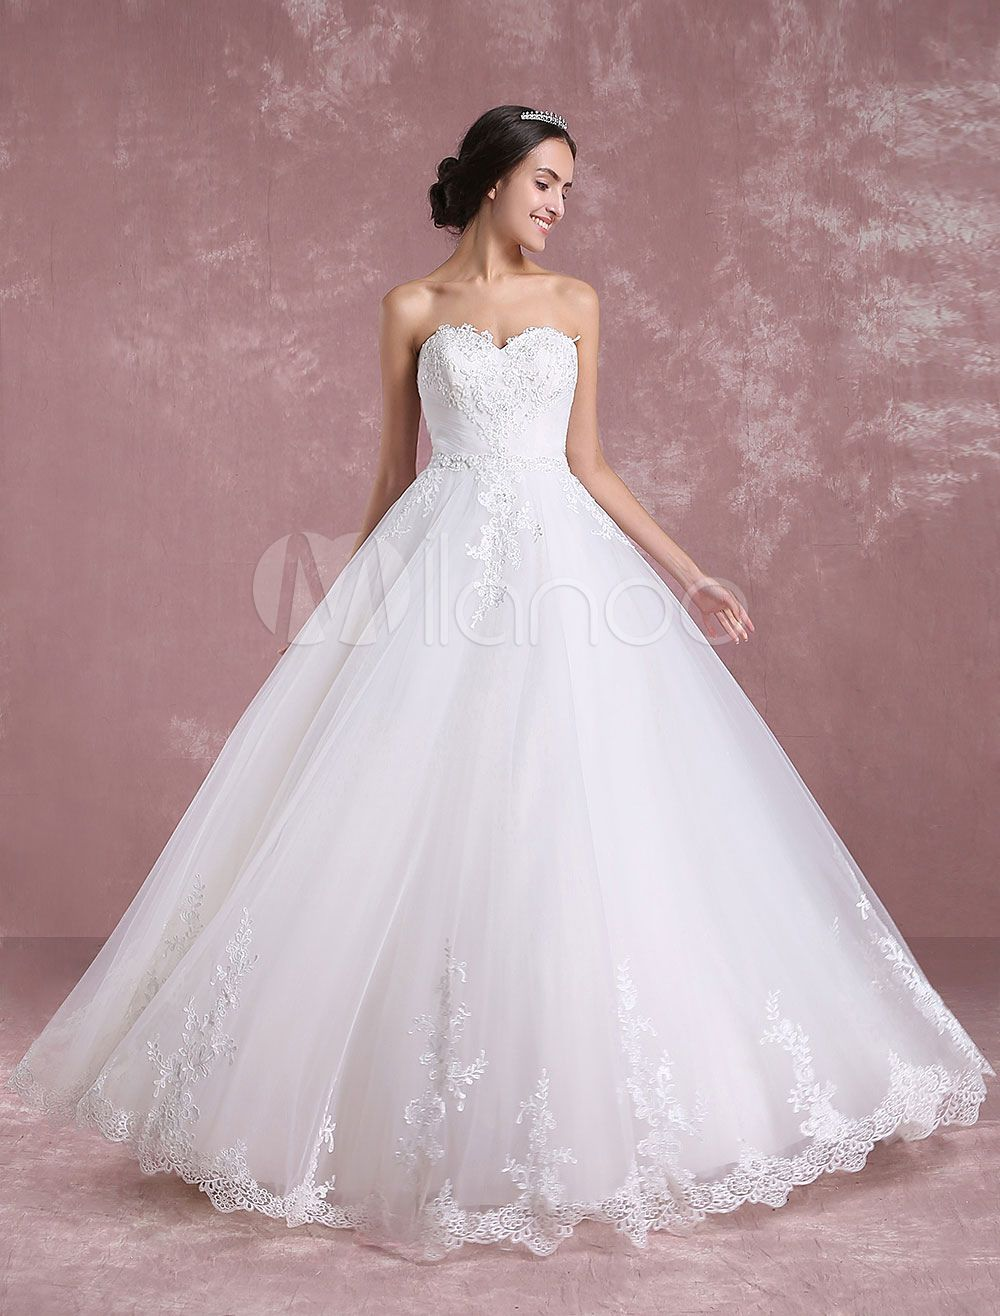 Ivory wedding dresses with sleeves  Ivory Wedding Dress Sweetheart Backless Tulle Bridal Dress Strapless